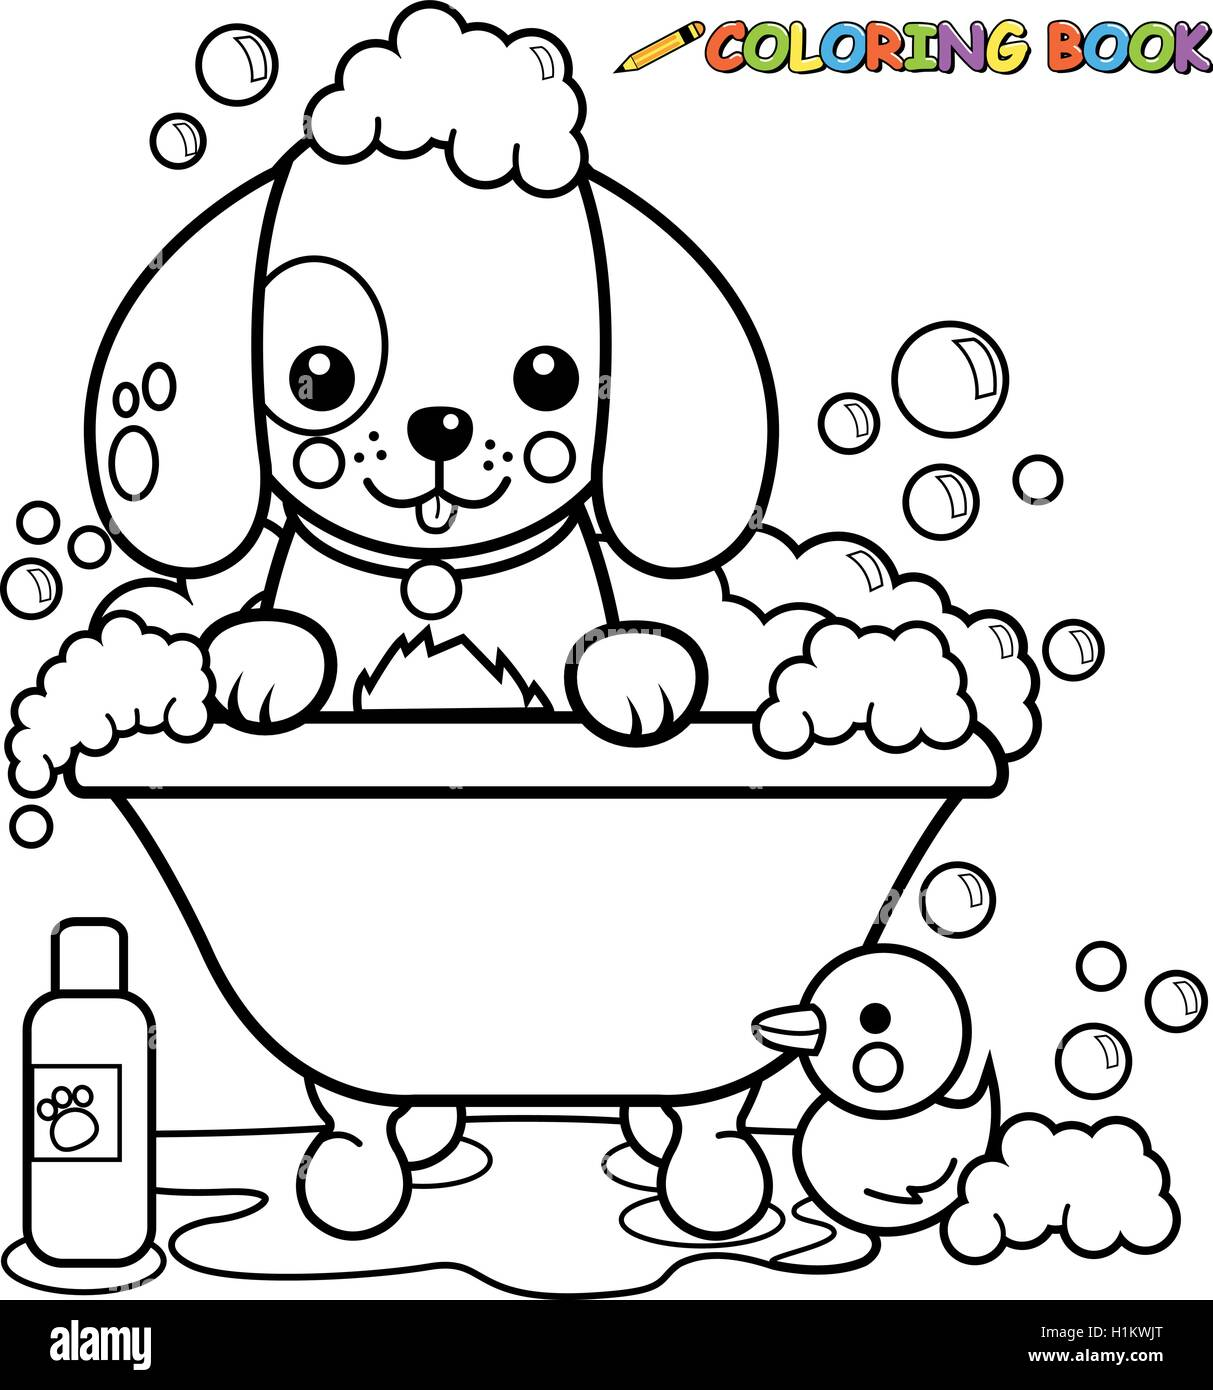 Dog taking a bath coloring book page Stock Vector Art & Illustration ...